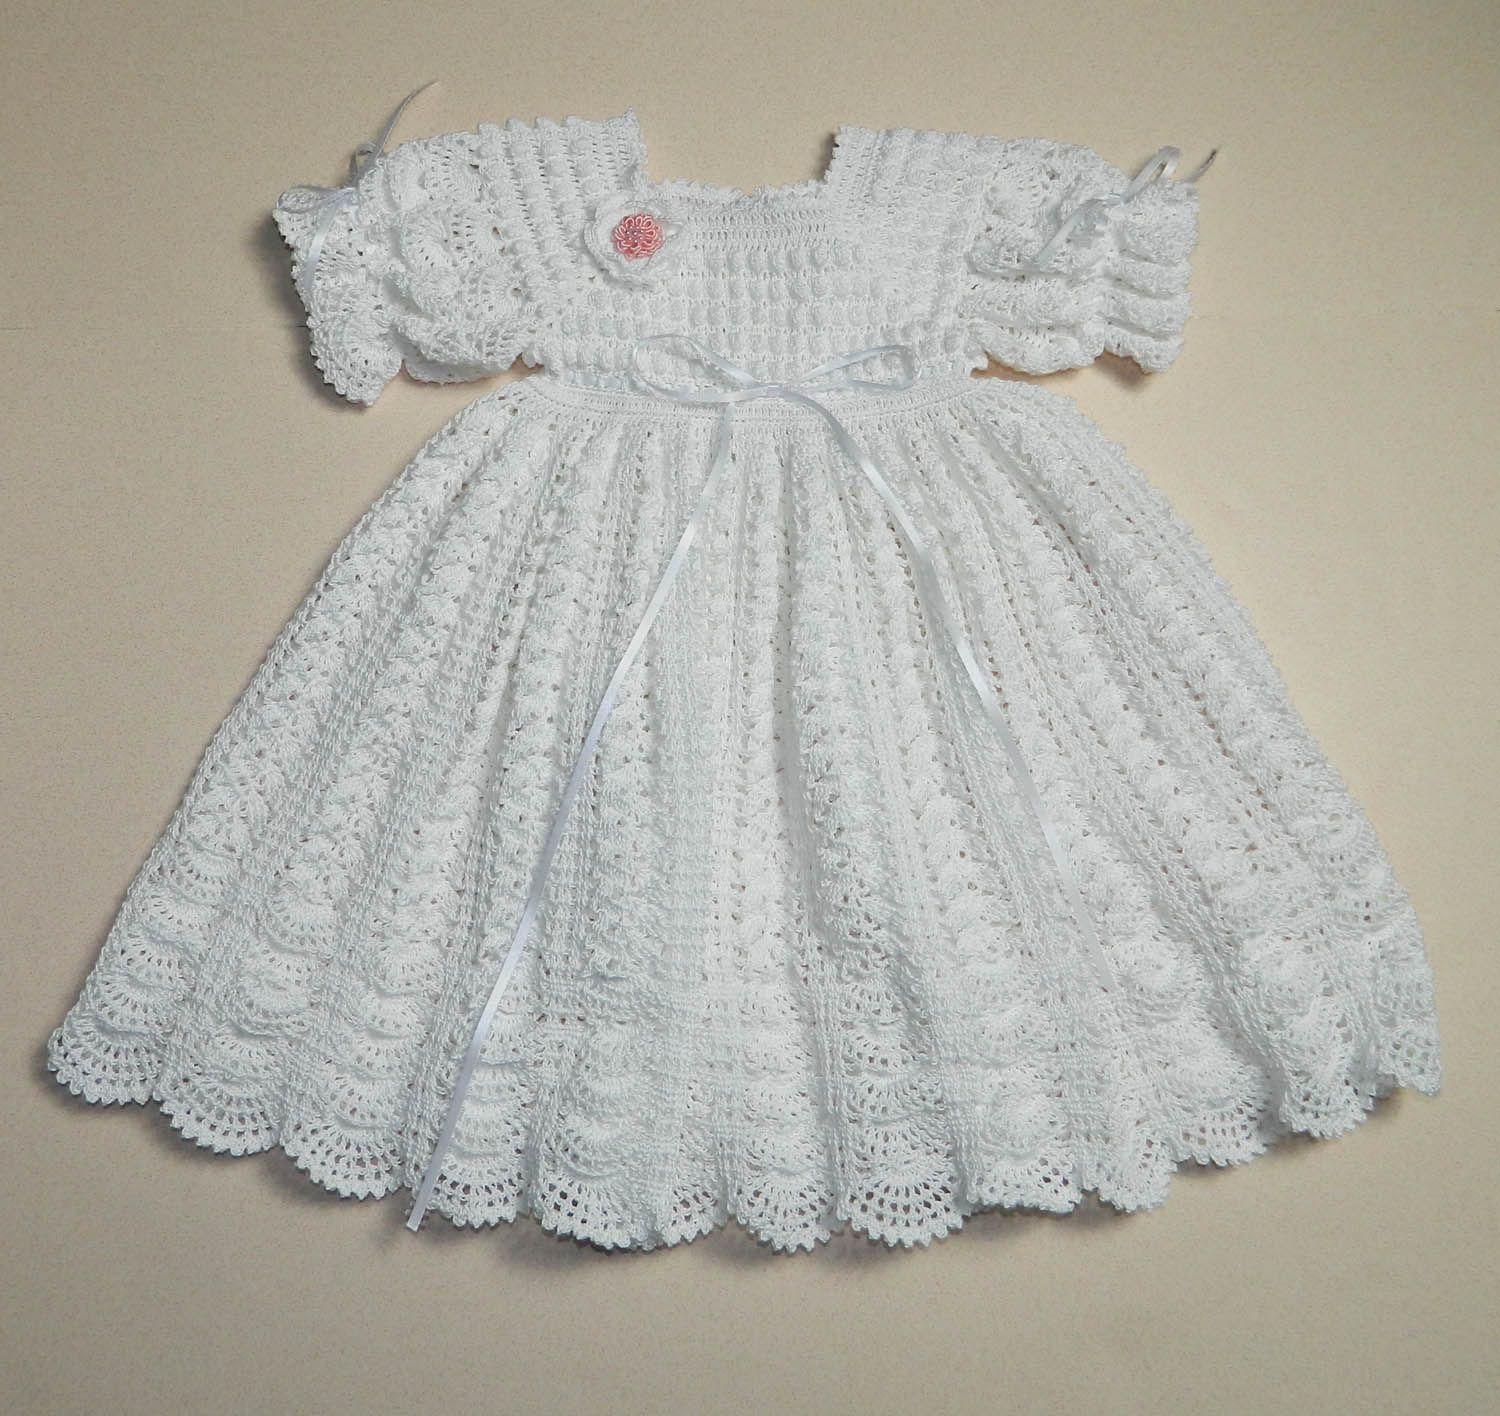 Free Knitting Pattern Baby Christening Gown : Victorian+Crochet+Lace+Free+Patterns CHRISTENING CROCHET DRESS PATTERN Cr...